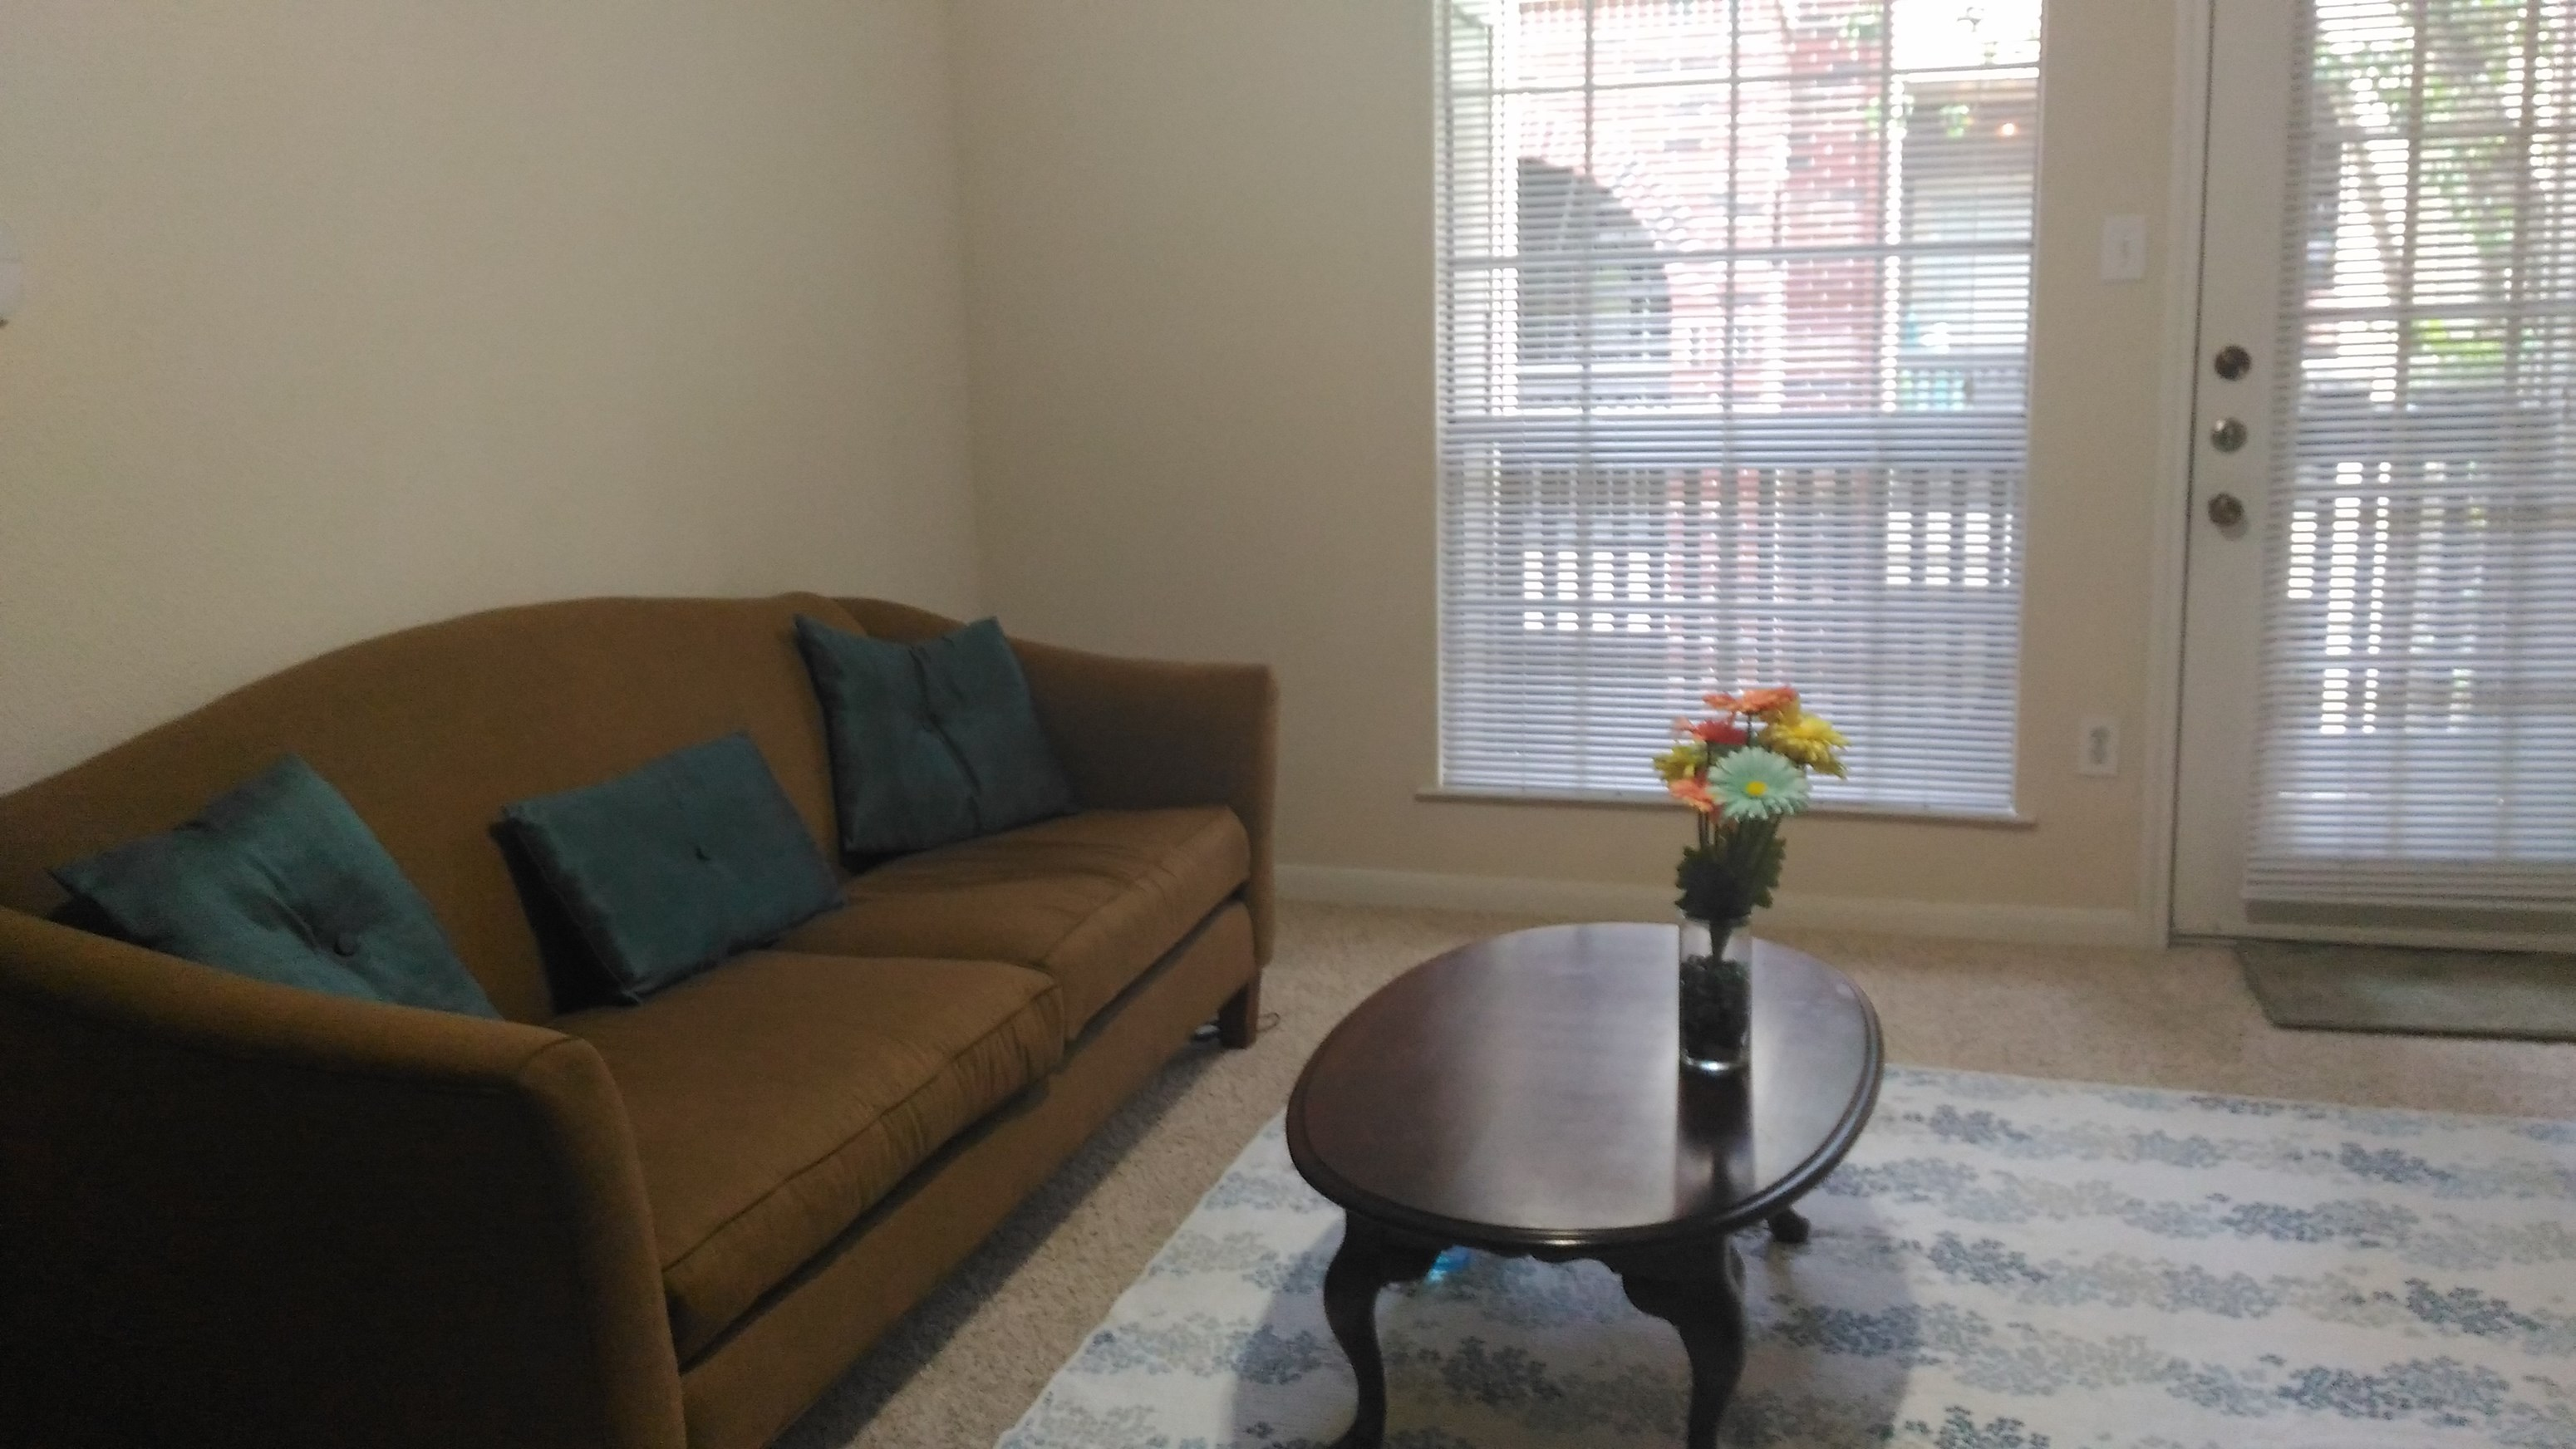 Apartment For Sublease 8787 Woodway Drive  Houston  Texas 77063. 2 Bedroom Apartment to Rent in Houston  TX  Two Bedroom Apartment